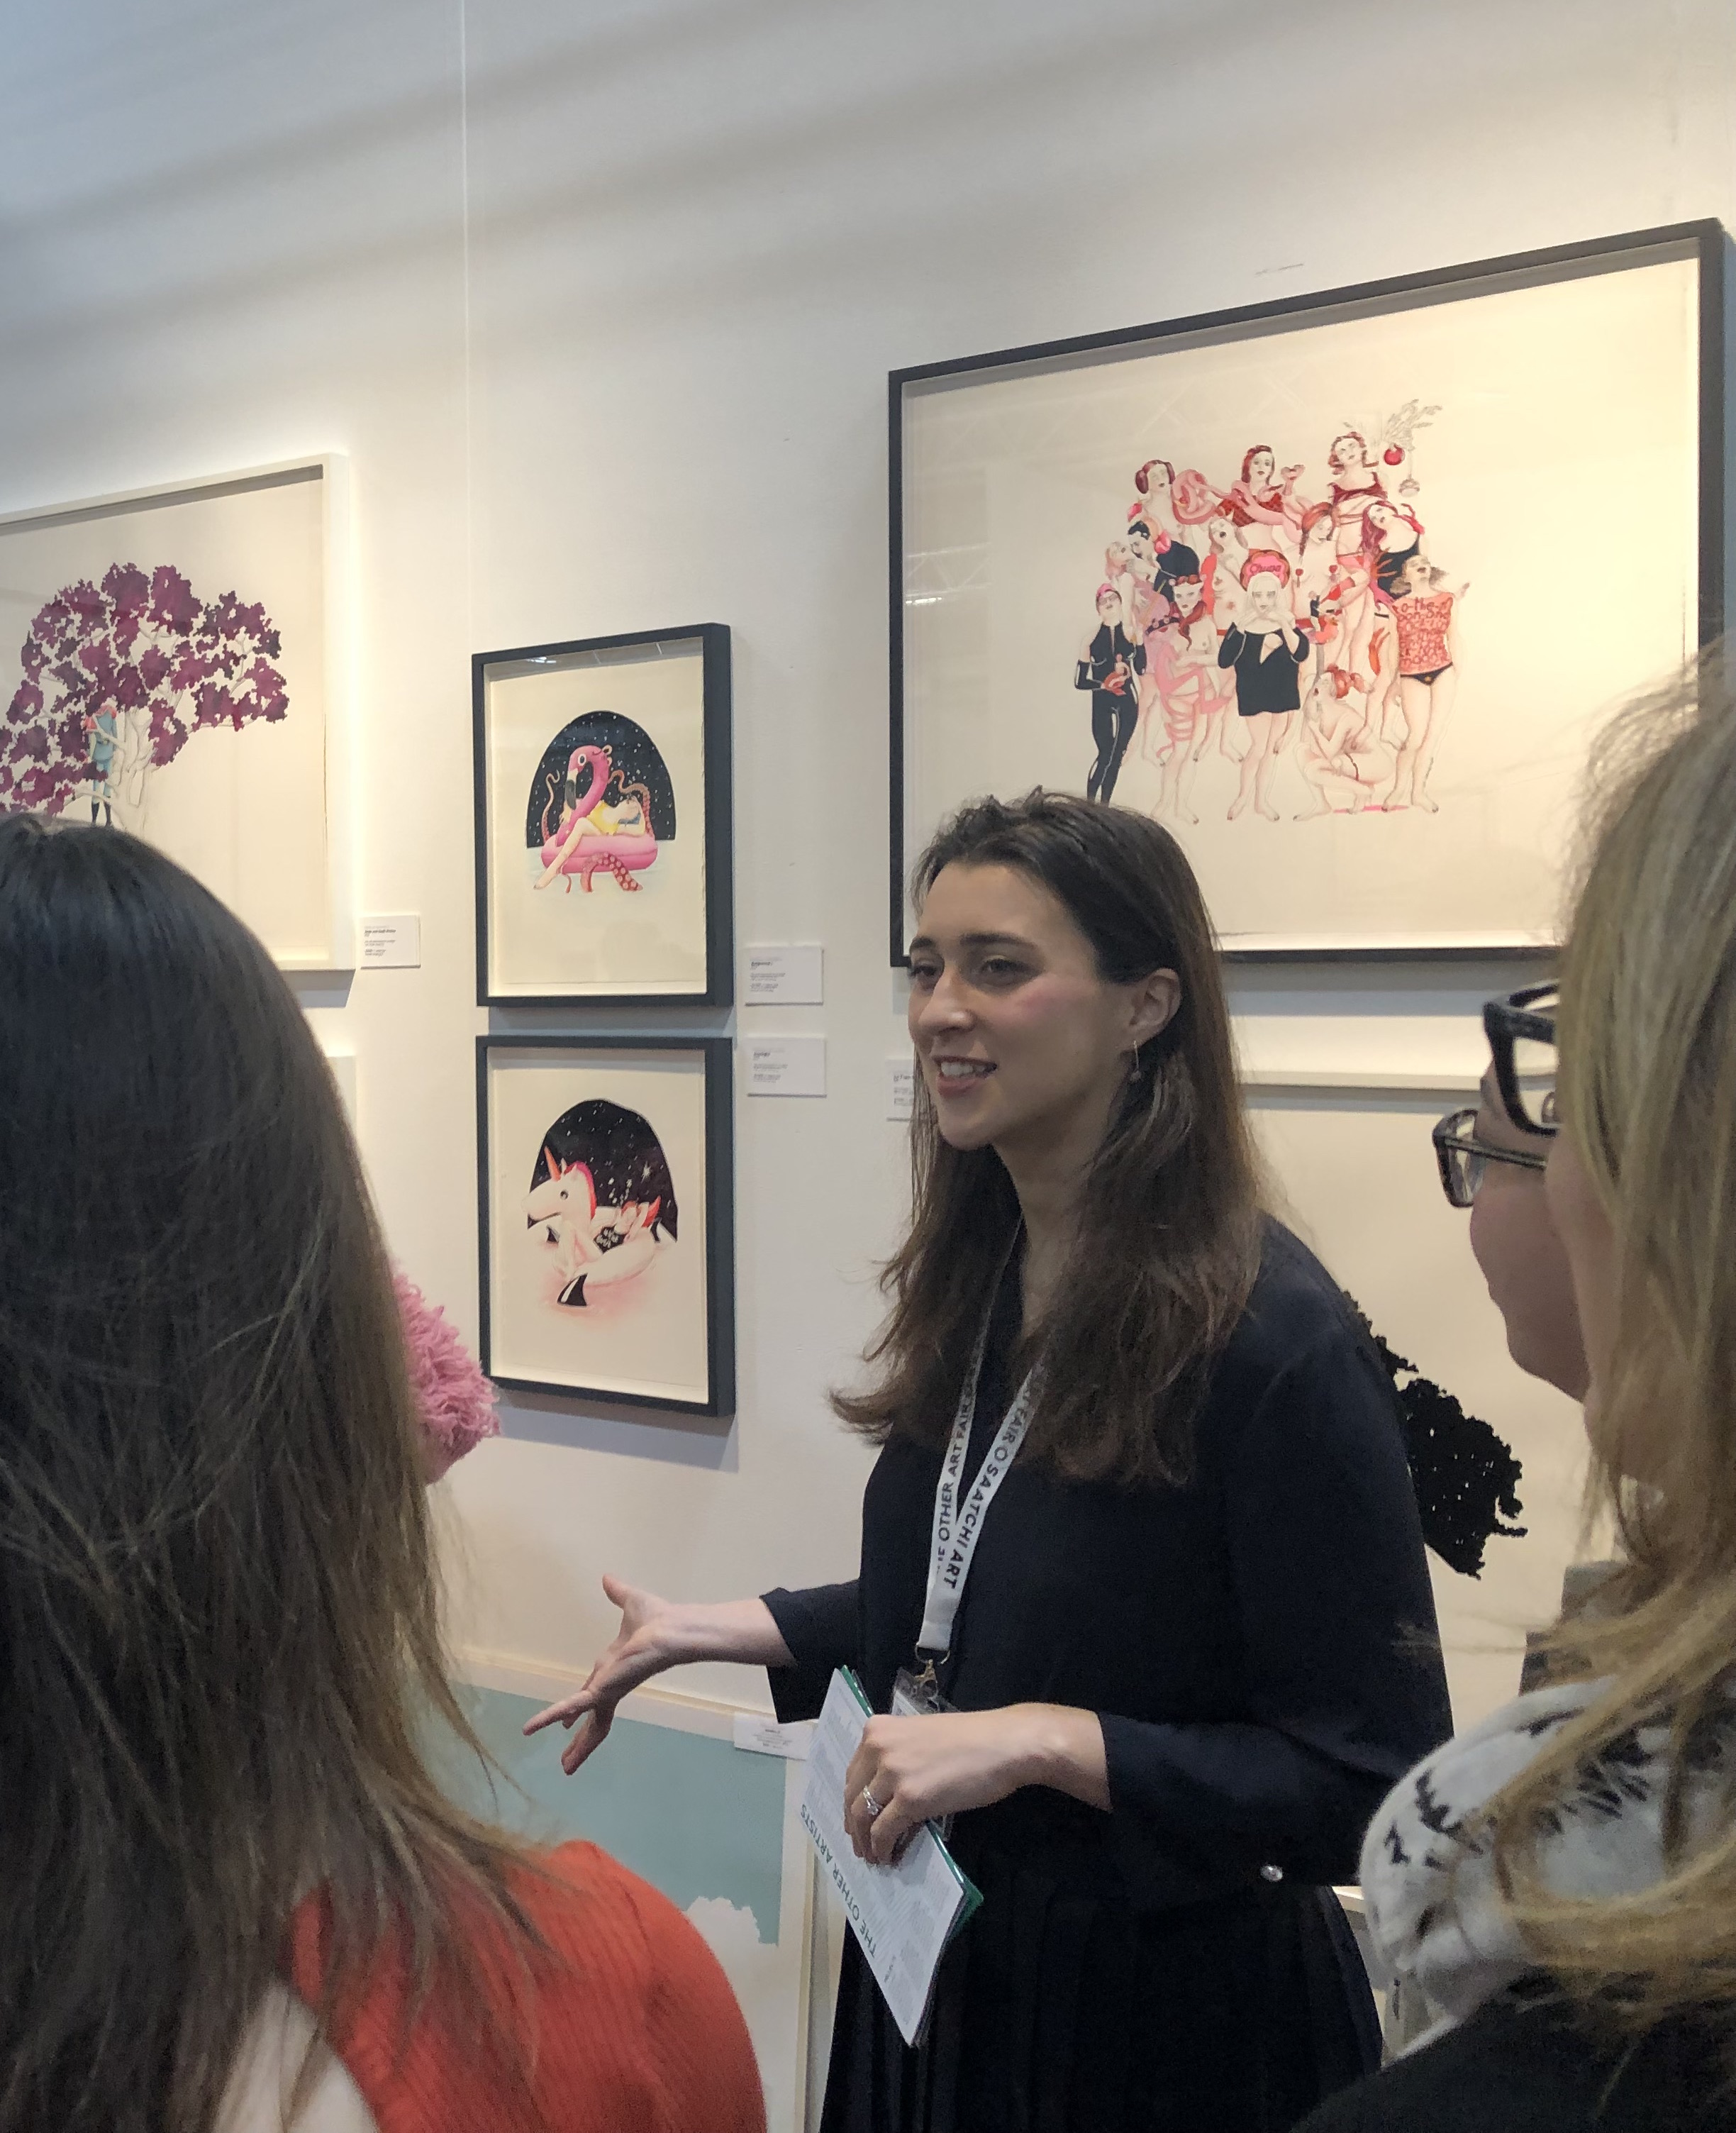 Discussing the work of  Delphine Lebourgeois